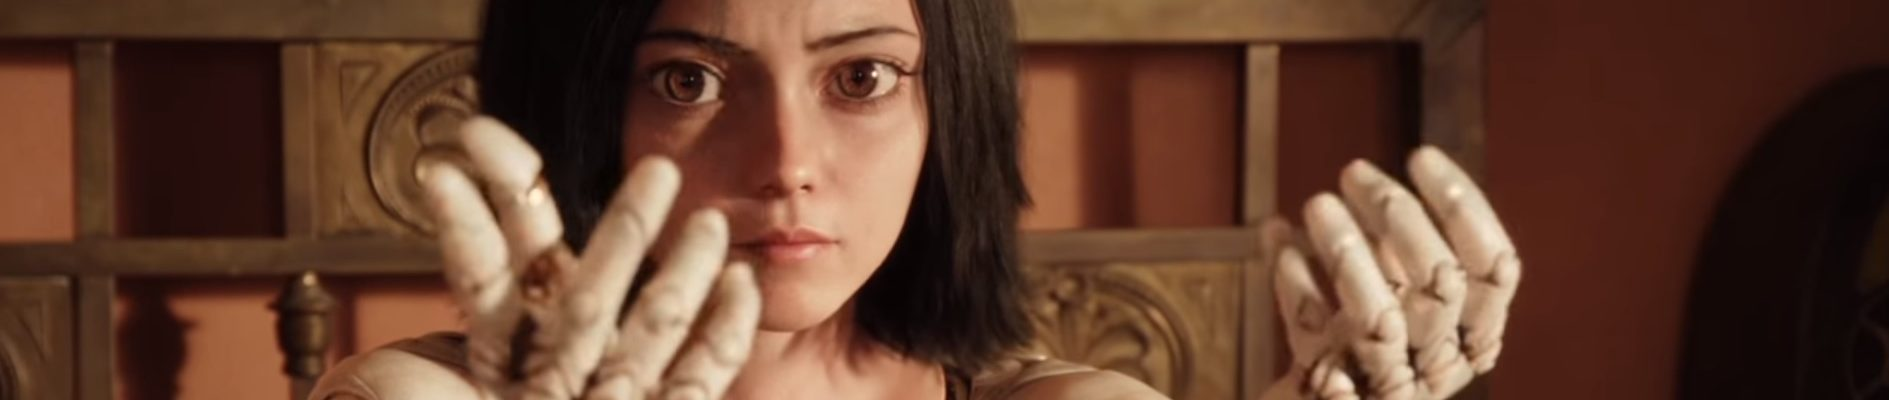 Trailers Alita Jessica Jones Season Two